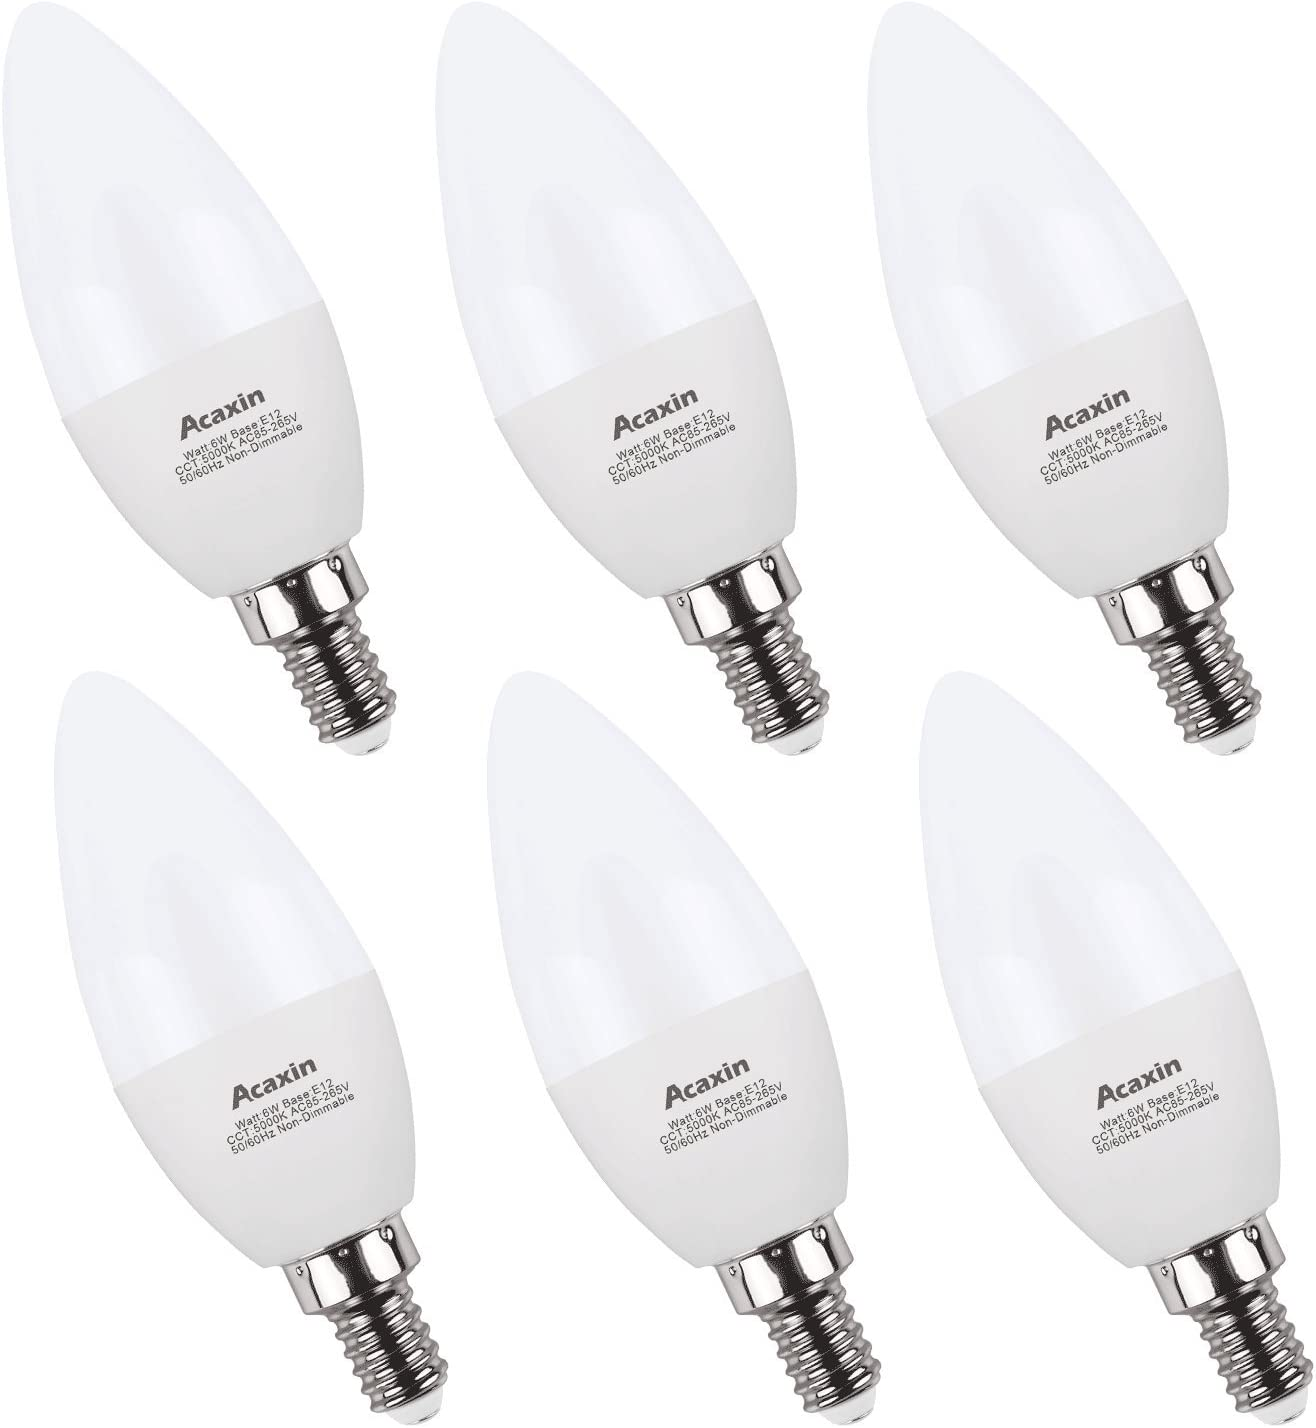 E12 Bulbs Candelabra LED Bulbs 60 Watt,Acaxin E12 Daylight 5000K LED Chandelier Bulbs,600 Lumen, Non-Dimmable,6 Pack